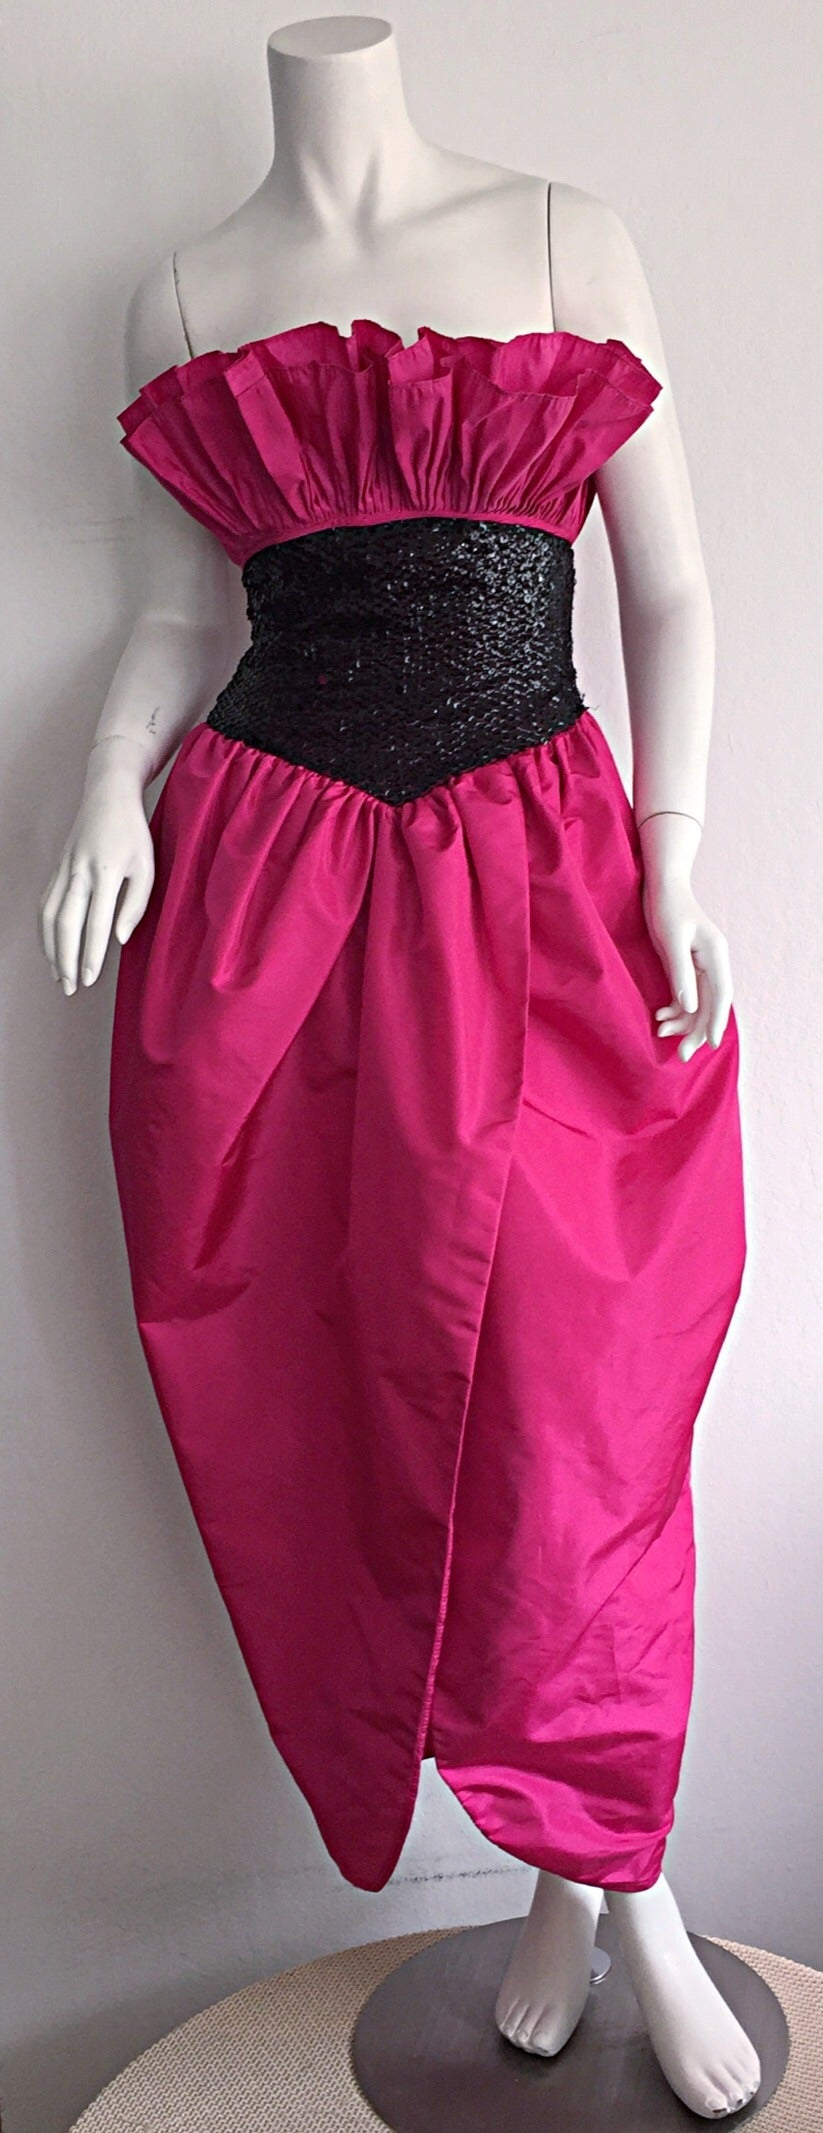 Incredible Vintage Victor Costa for Neiman Marcus Hot Pink Origami Tulip Dress 5